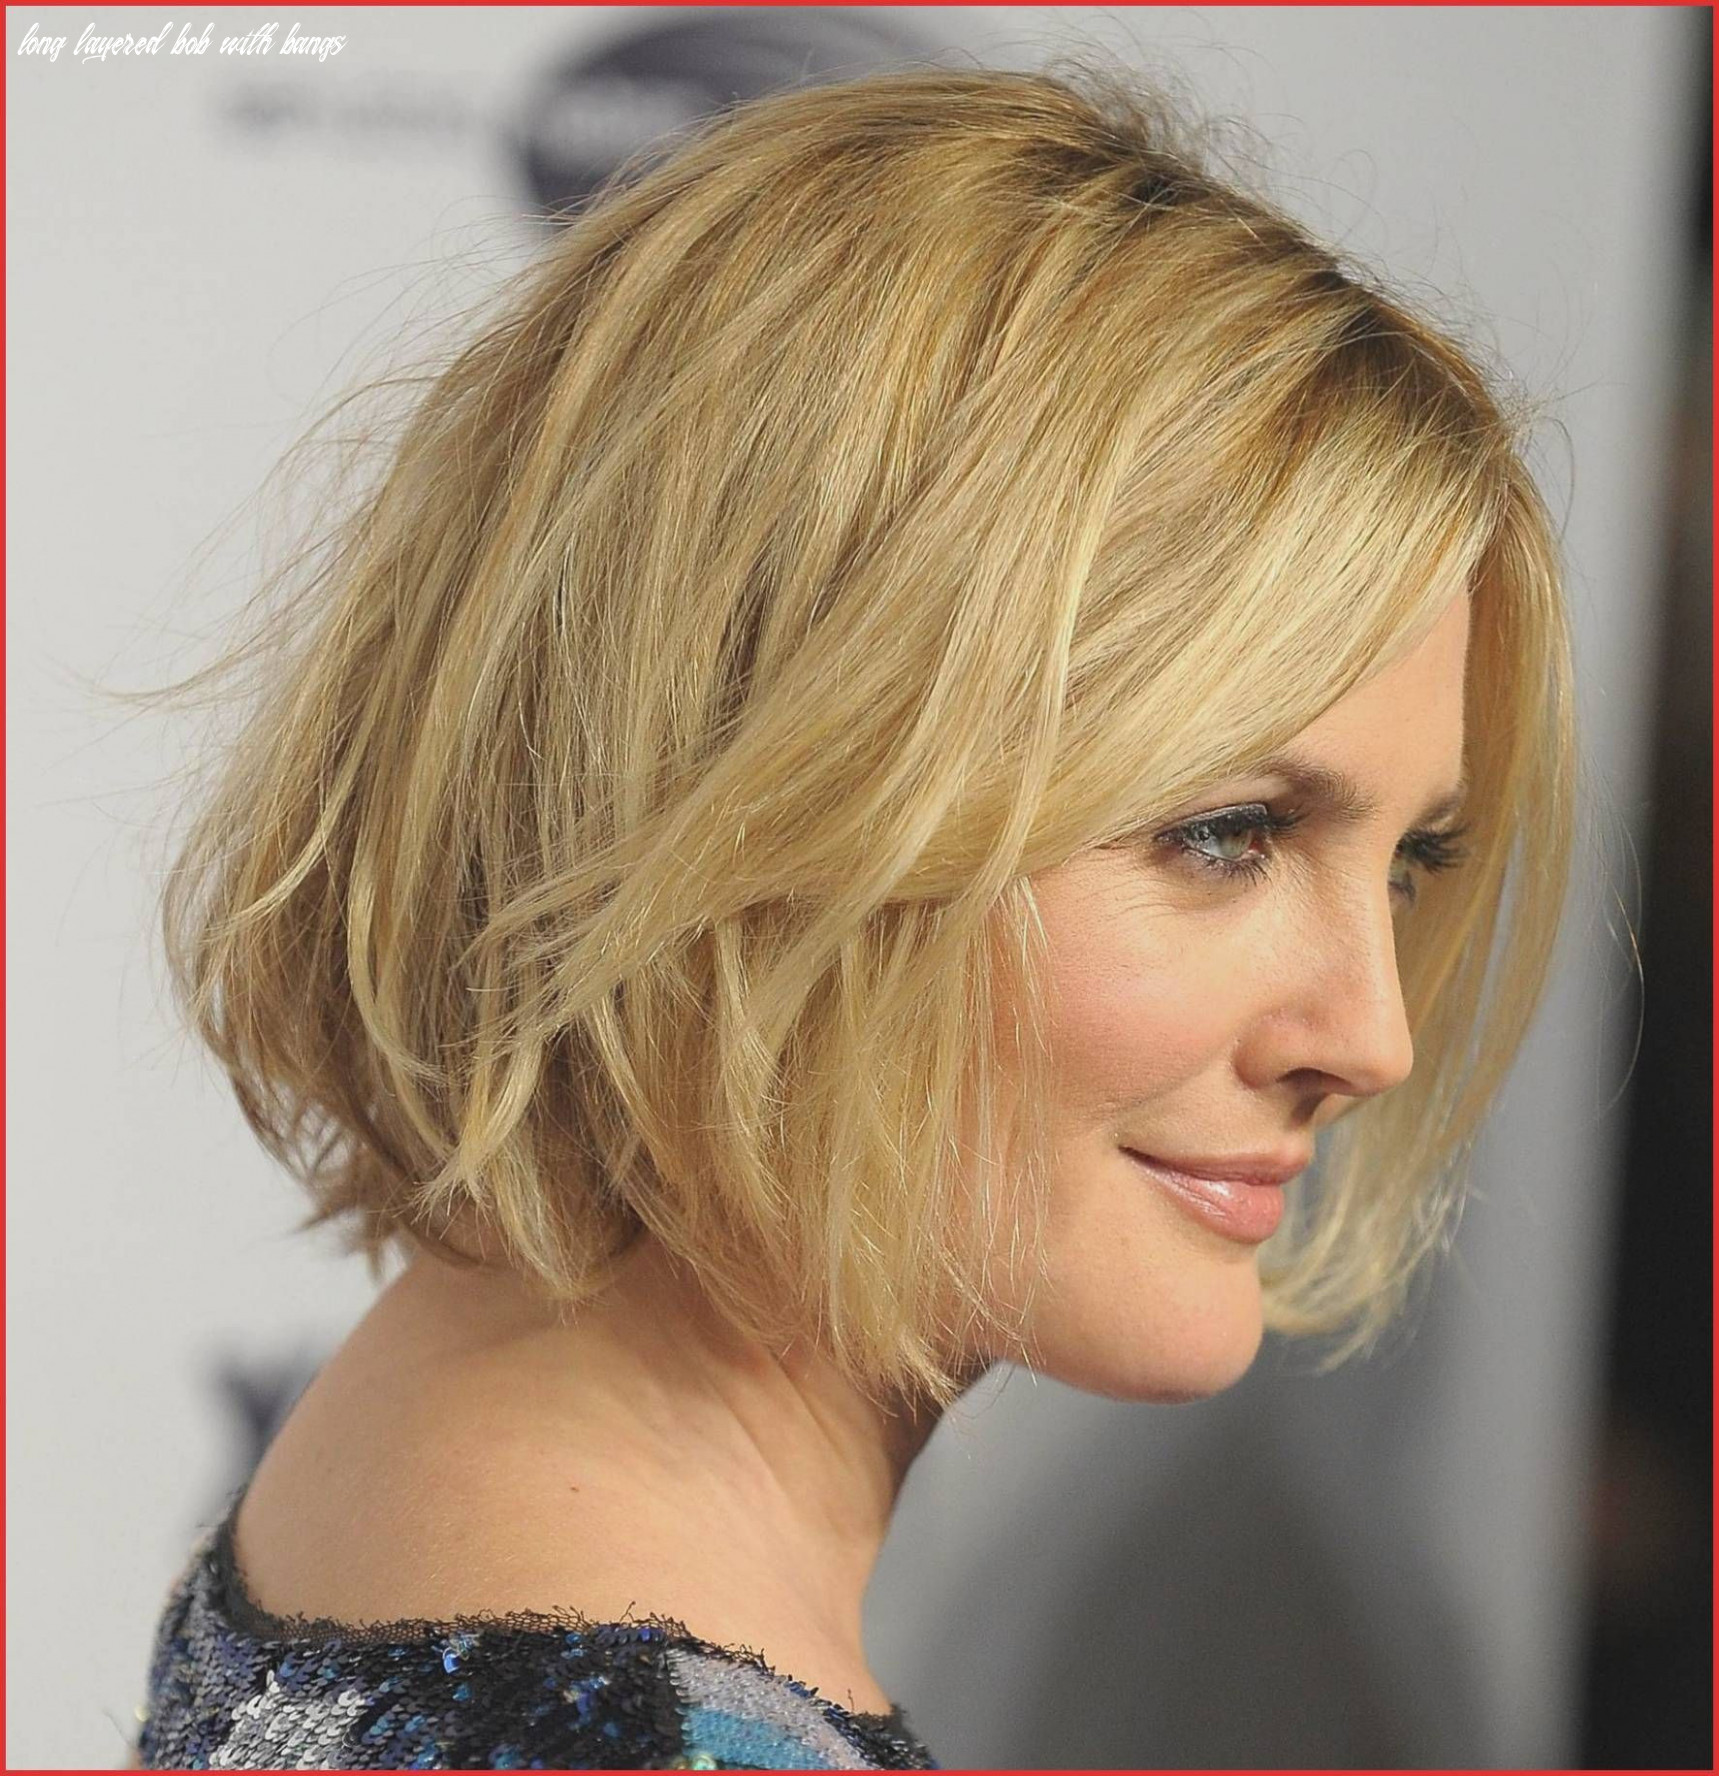 Long Layered Hair with Bangs New Hairstyles Bob Haircut with ...